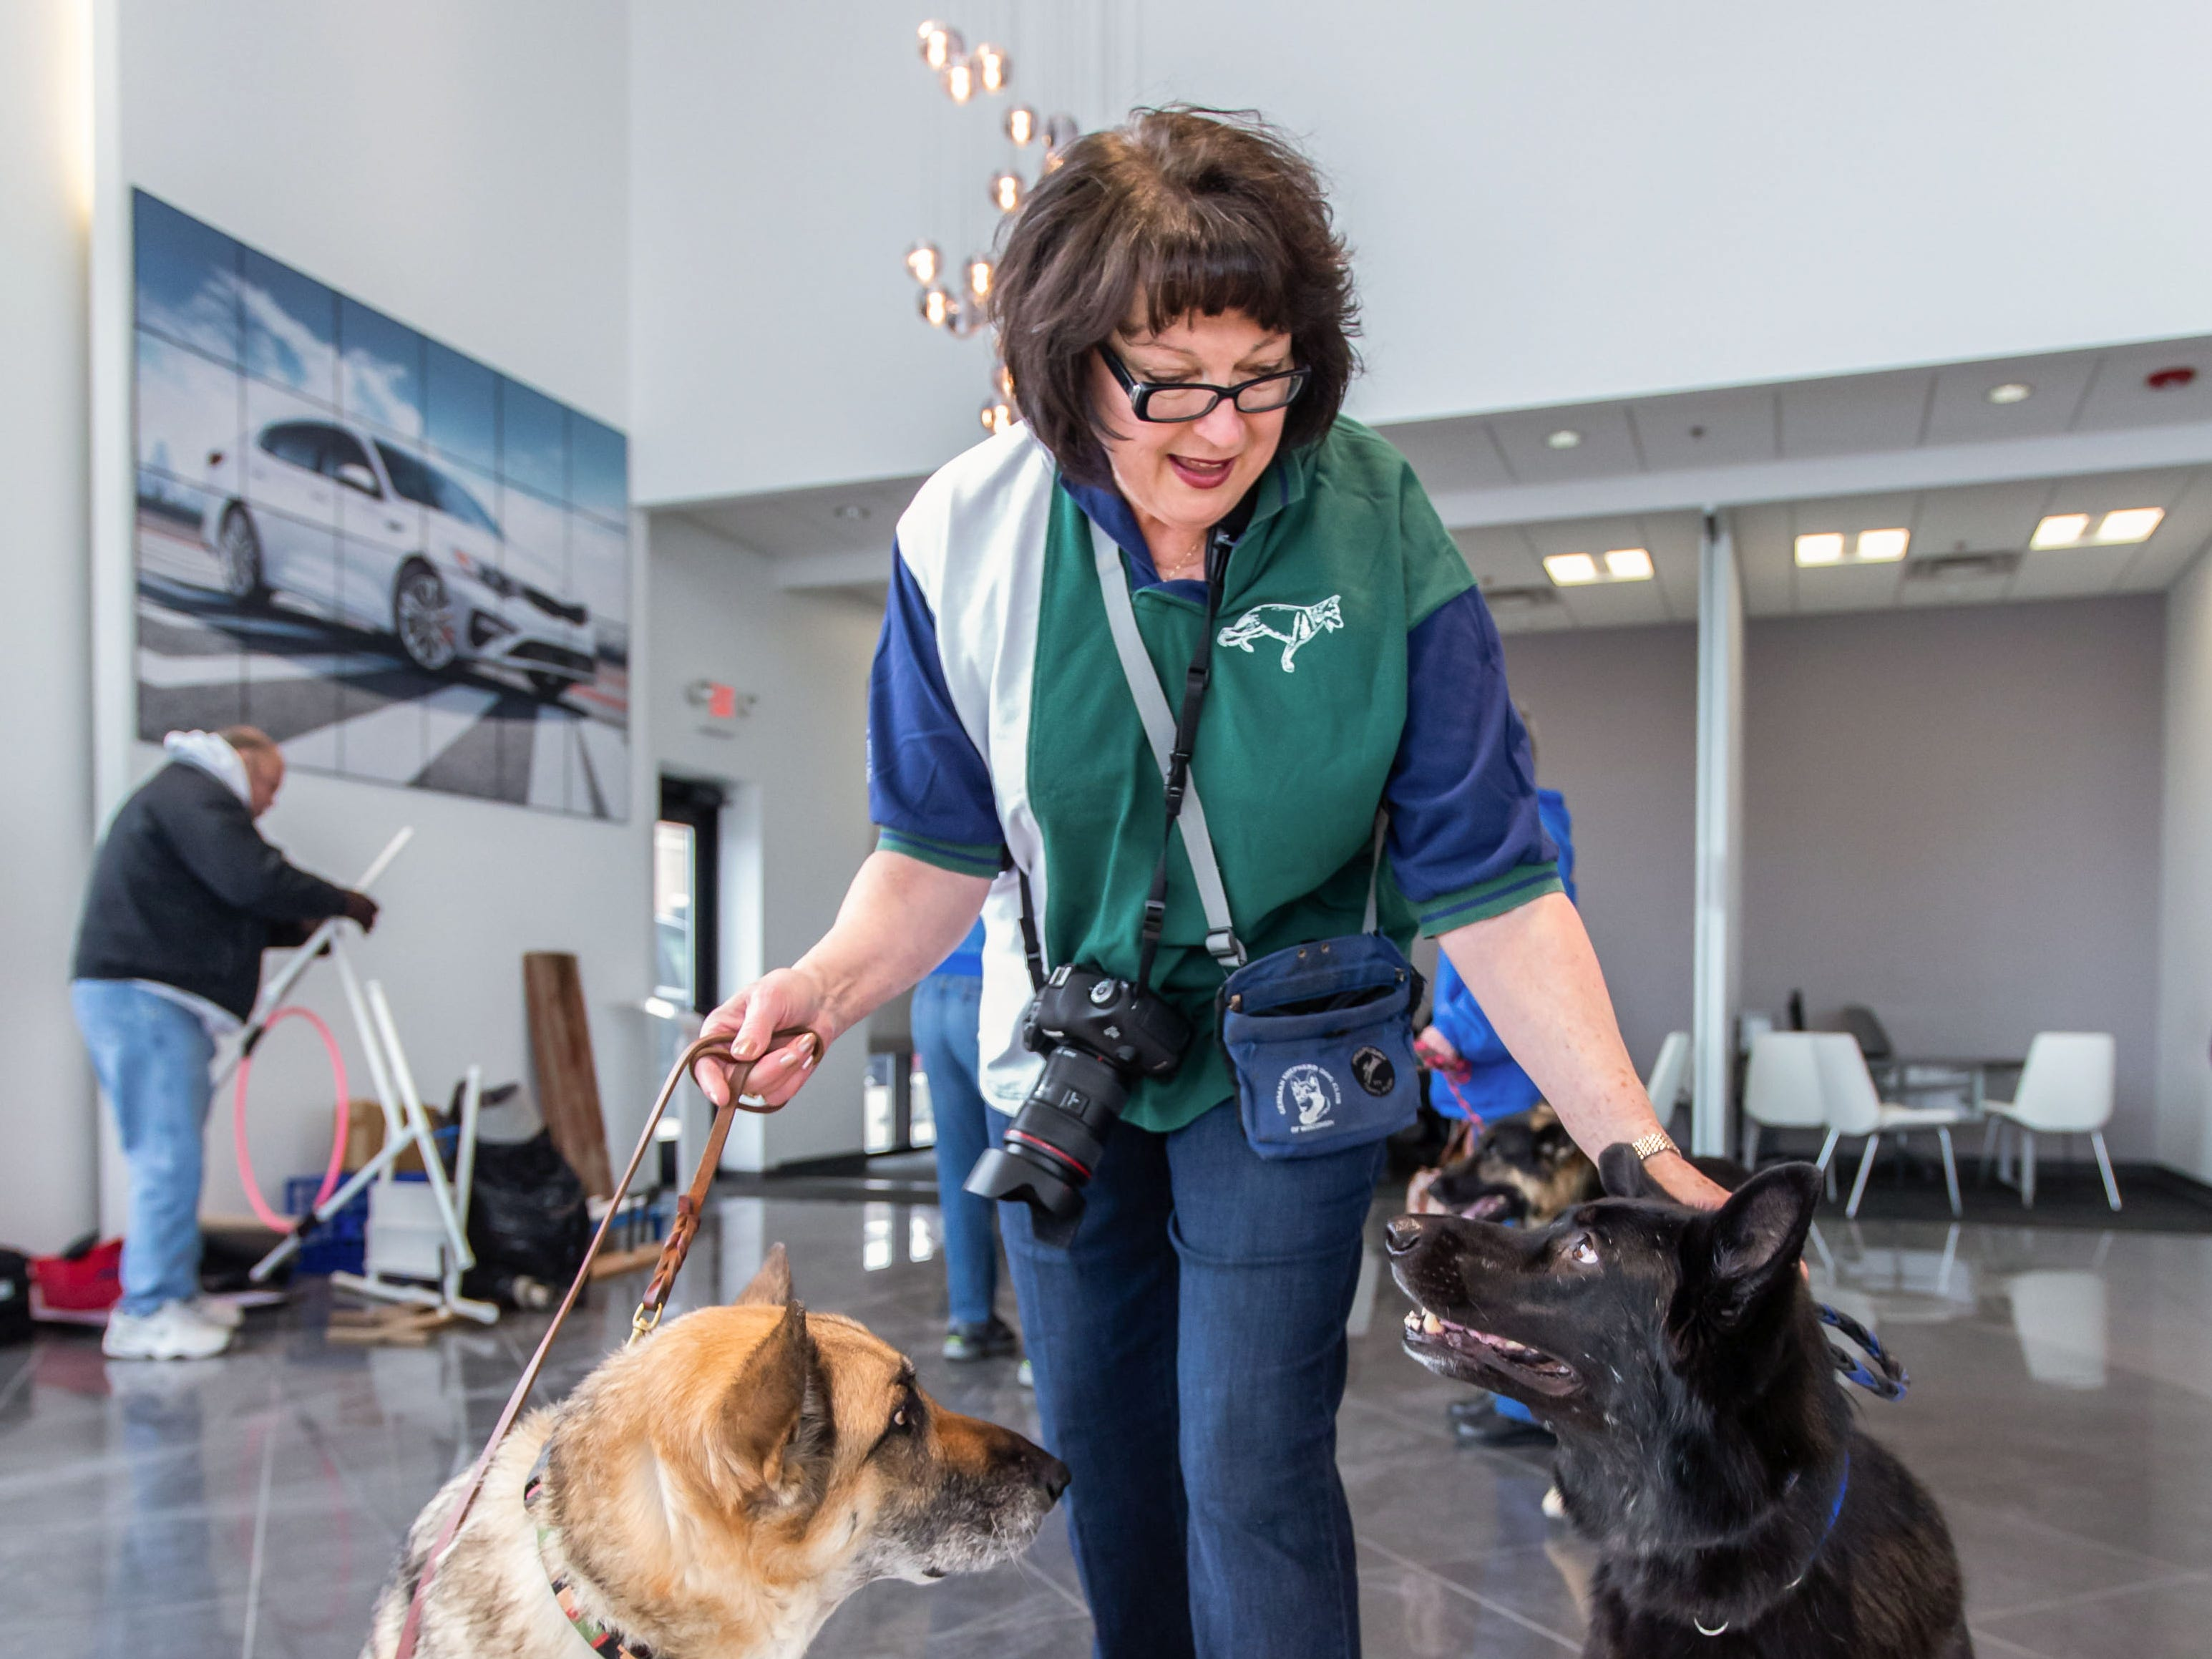 Jo Zimdars of Dousman wrangles a pair of shepherds during the Adopt a Pet program at Russ Darrow Kia of Wauwatosa on Saturday, March 9, 2019. The event, held in partnership with the Humane Animal Welfare Society (HAWS) in Waukesha and the German Shepard Dogs Club of Wisconsin (GSDCW), offered attendees the opportunity to meet and adopt dogs, cats, rabbits, and other types of animals.